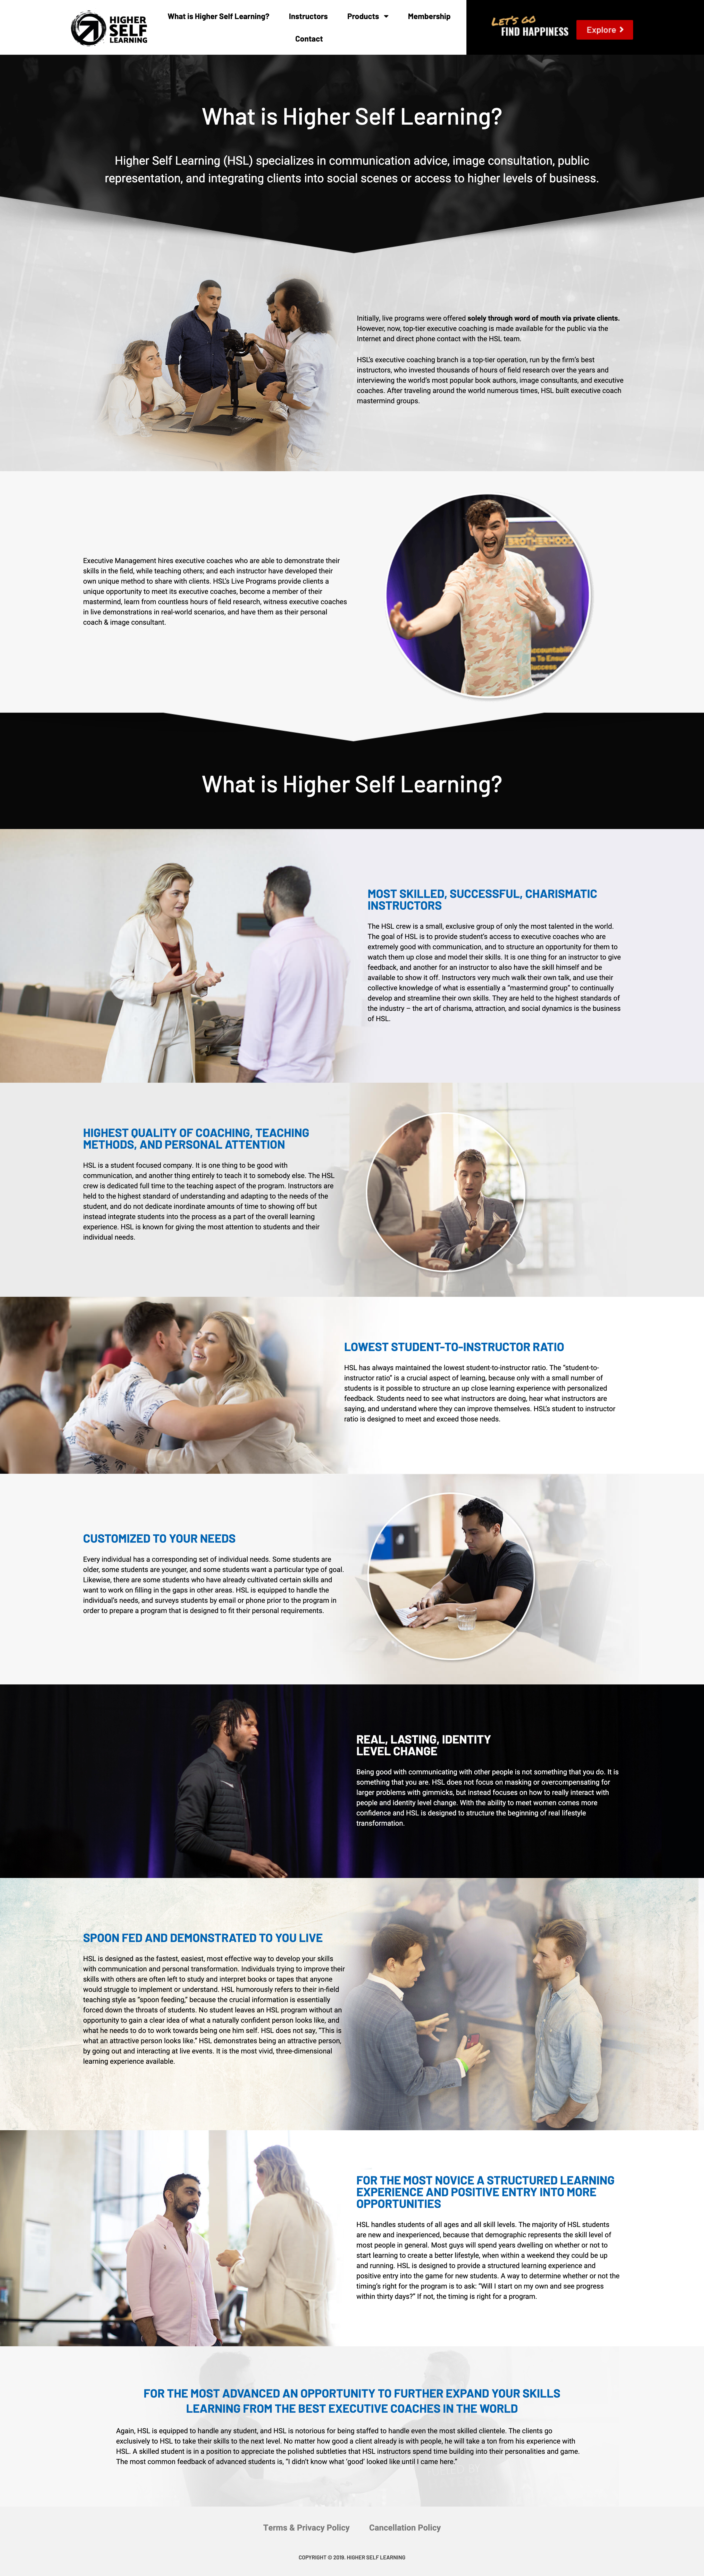 Higher Self Learning Homepage Design